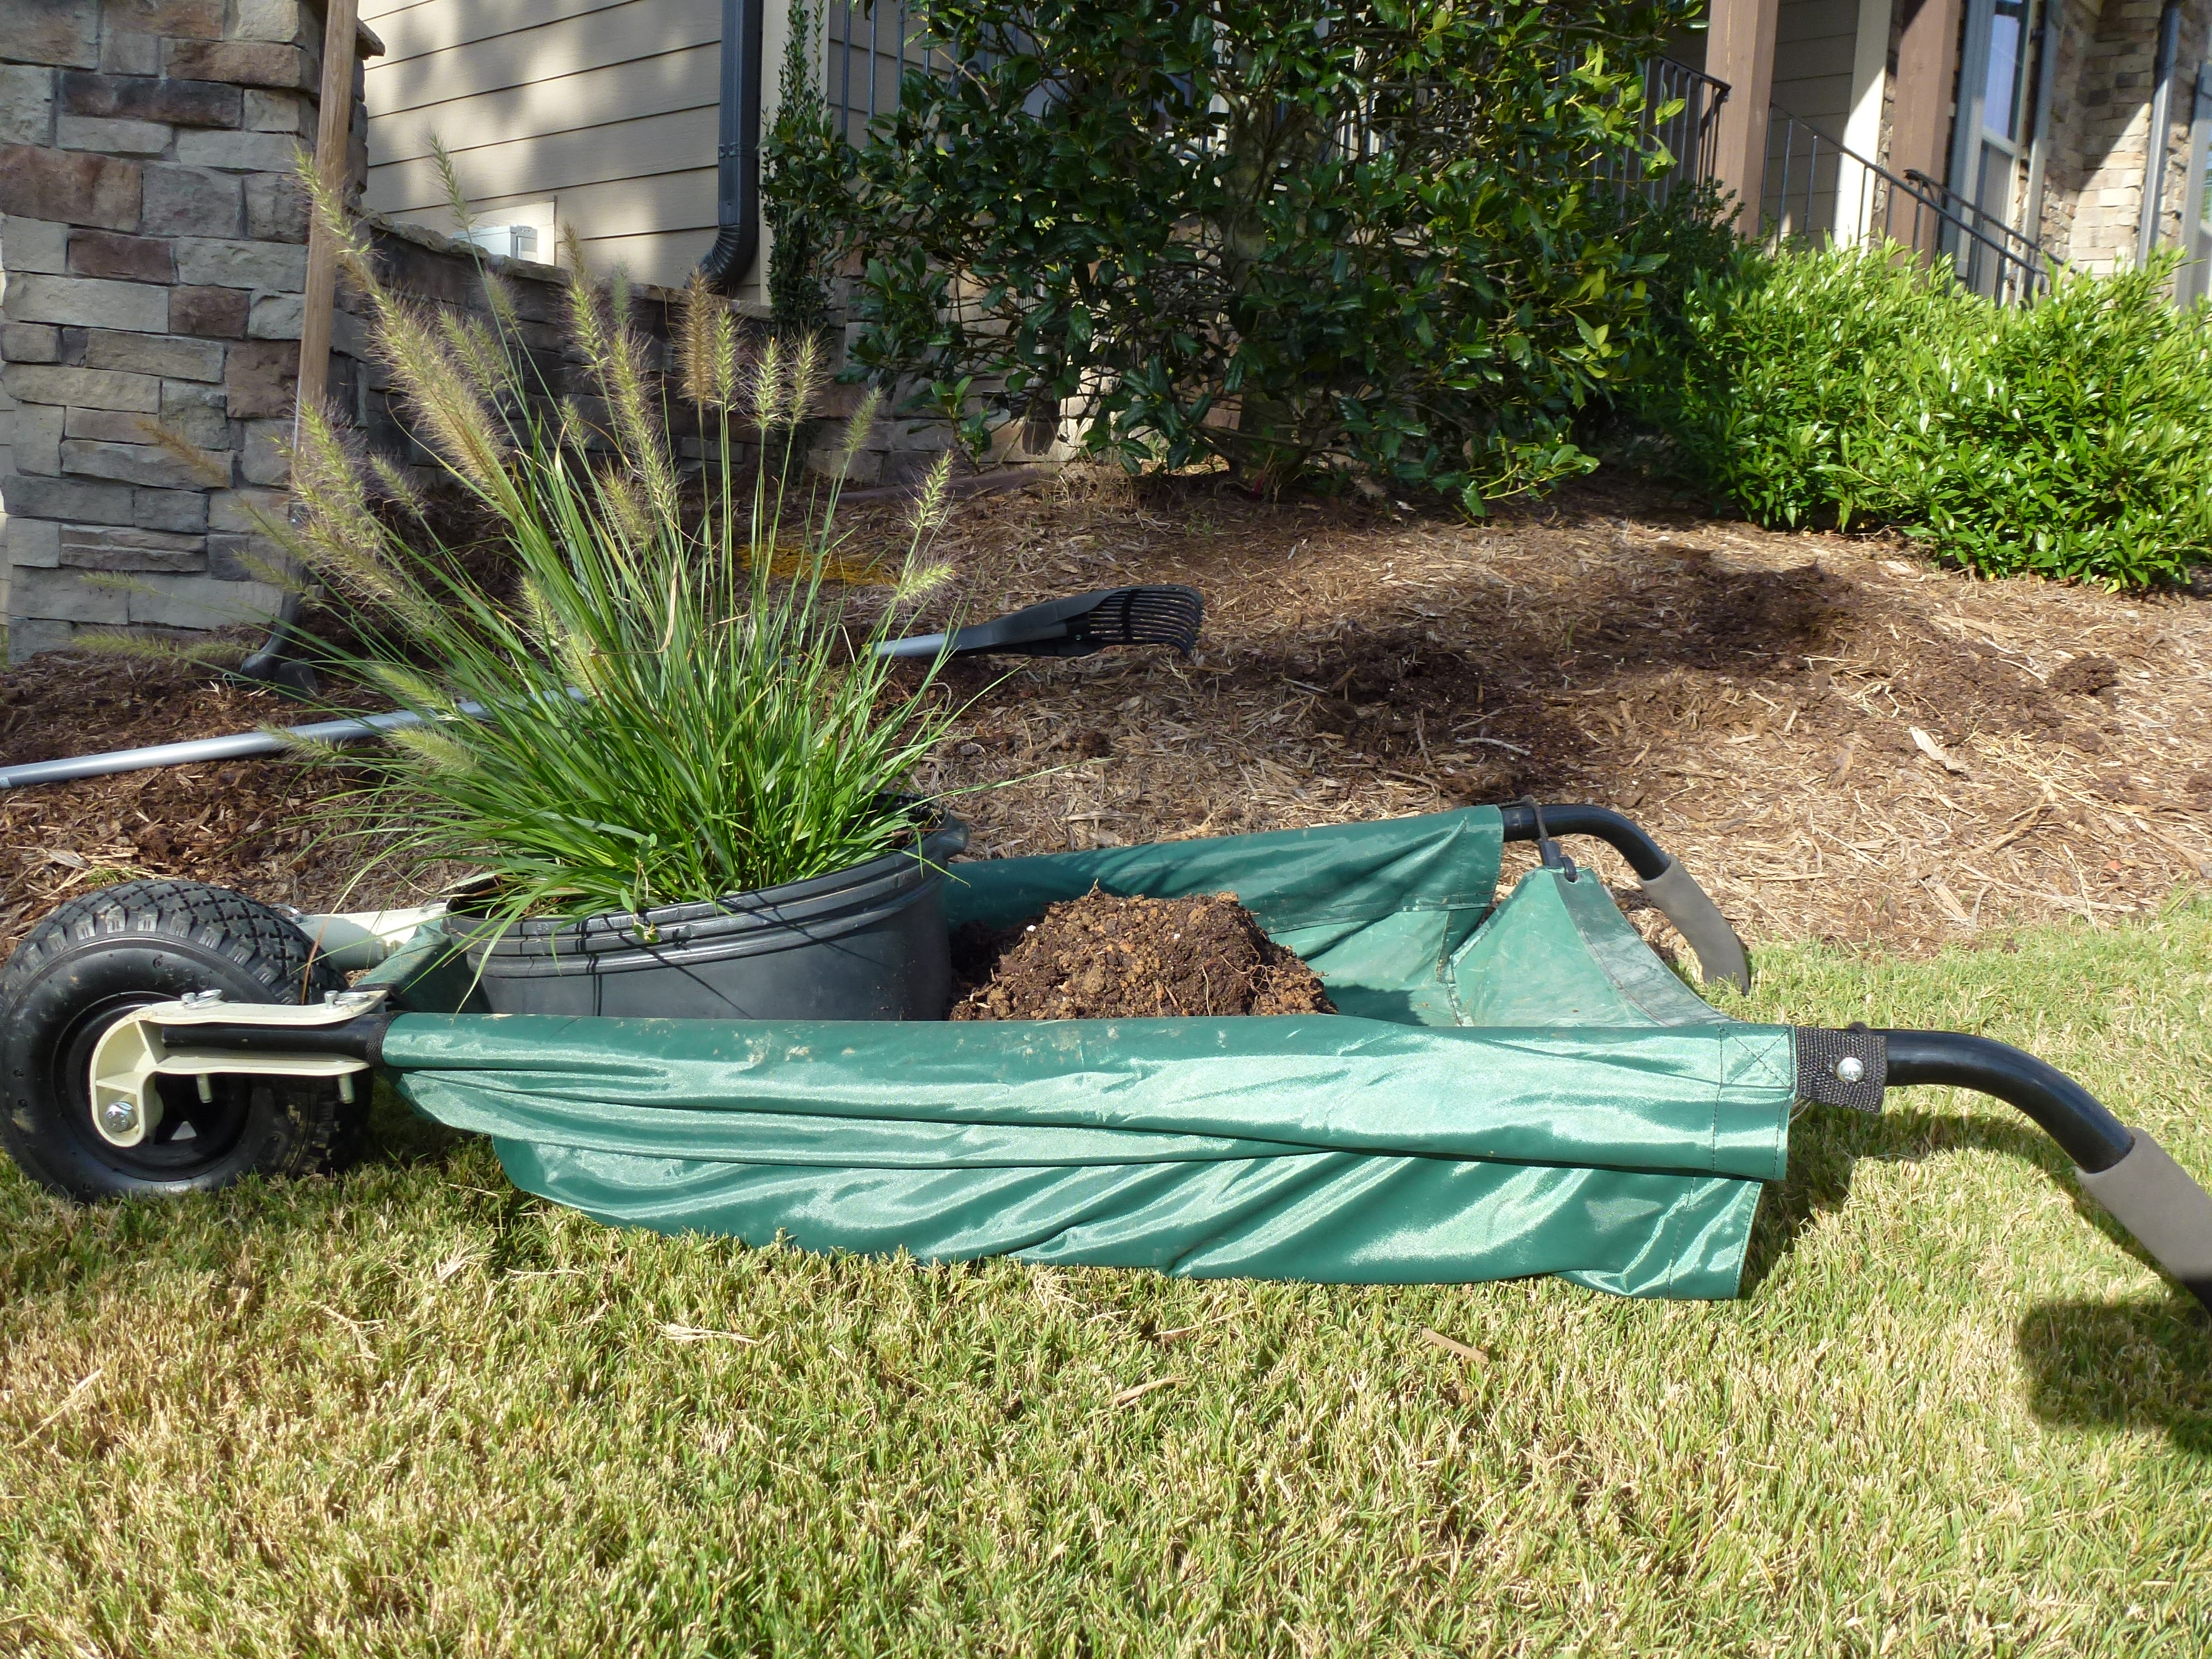 I Received The WheelEasy™LE From Allsop Home U0026 Garden To Try At My New Yard  In North Carolina. It Has Been Helpful In Removing Rocks And Hauling Mulch  And ...